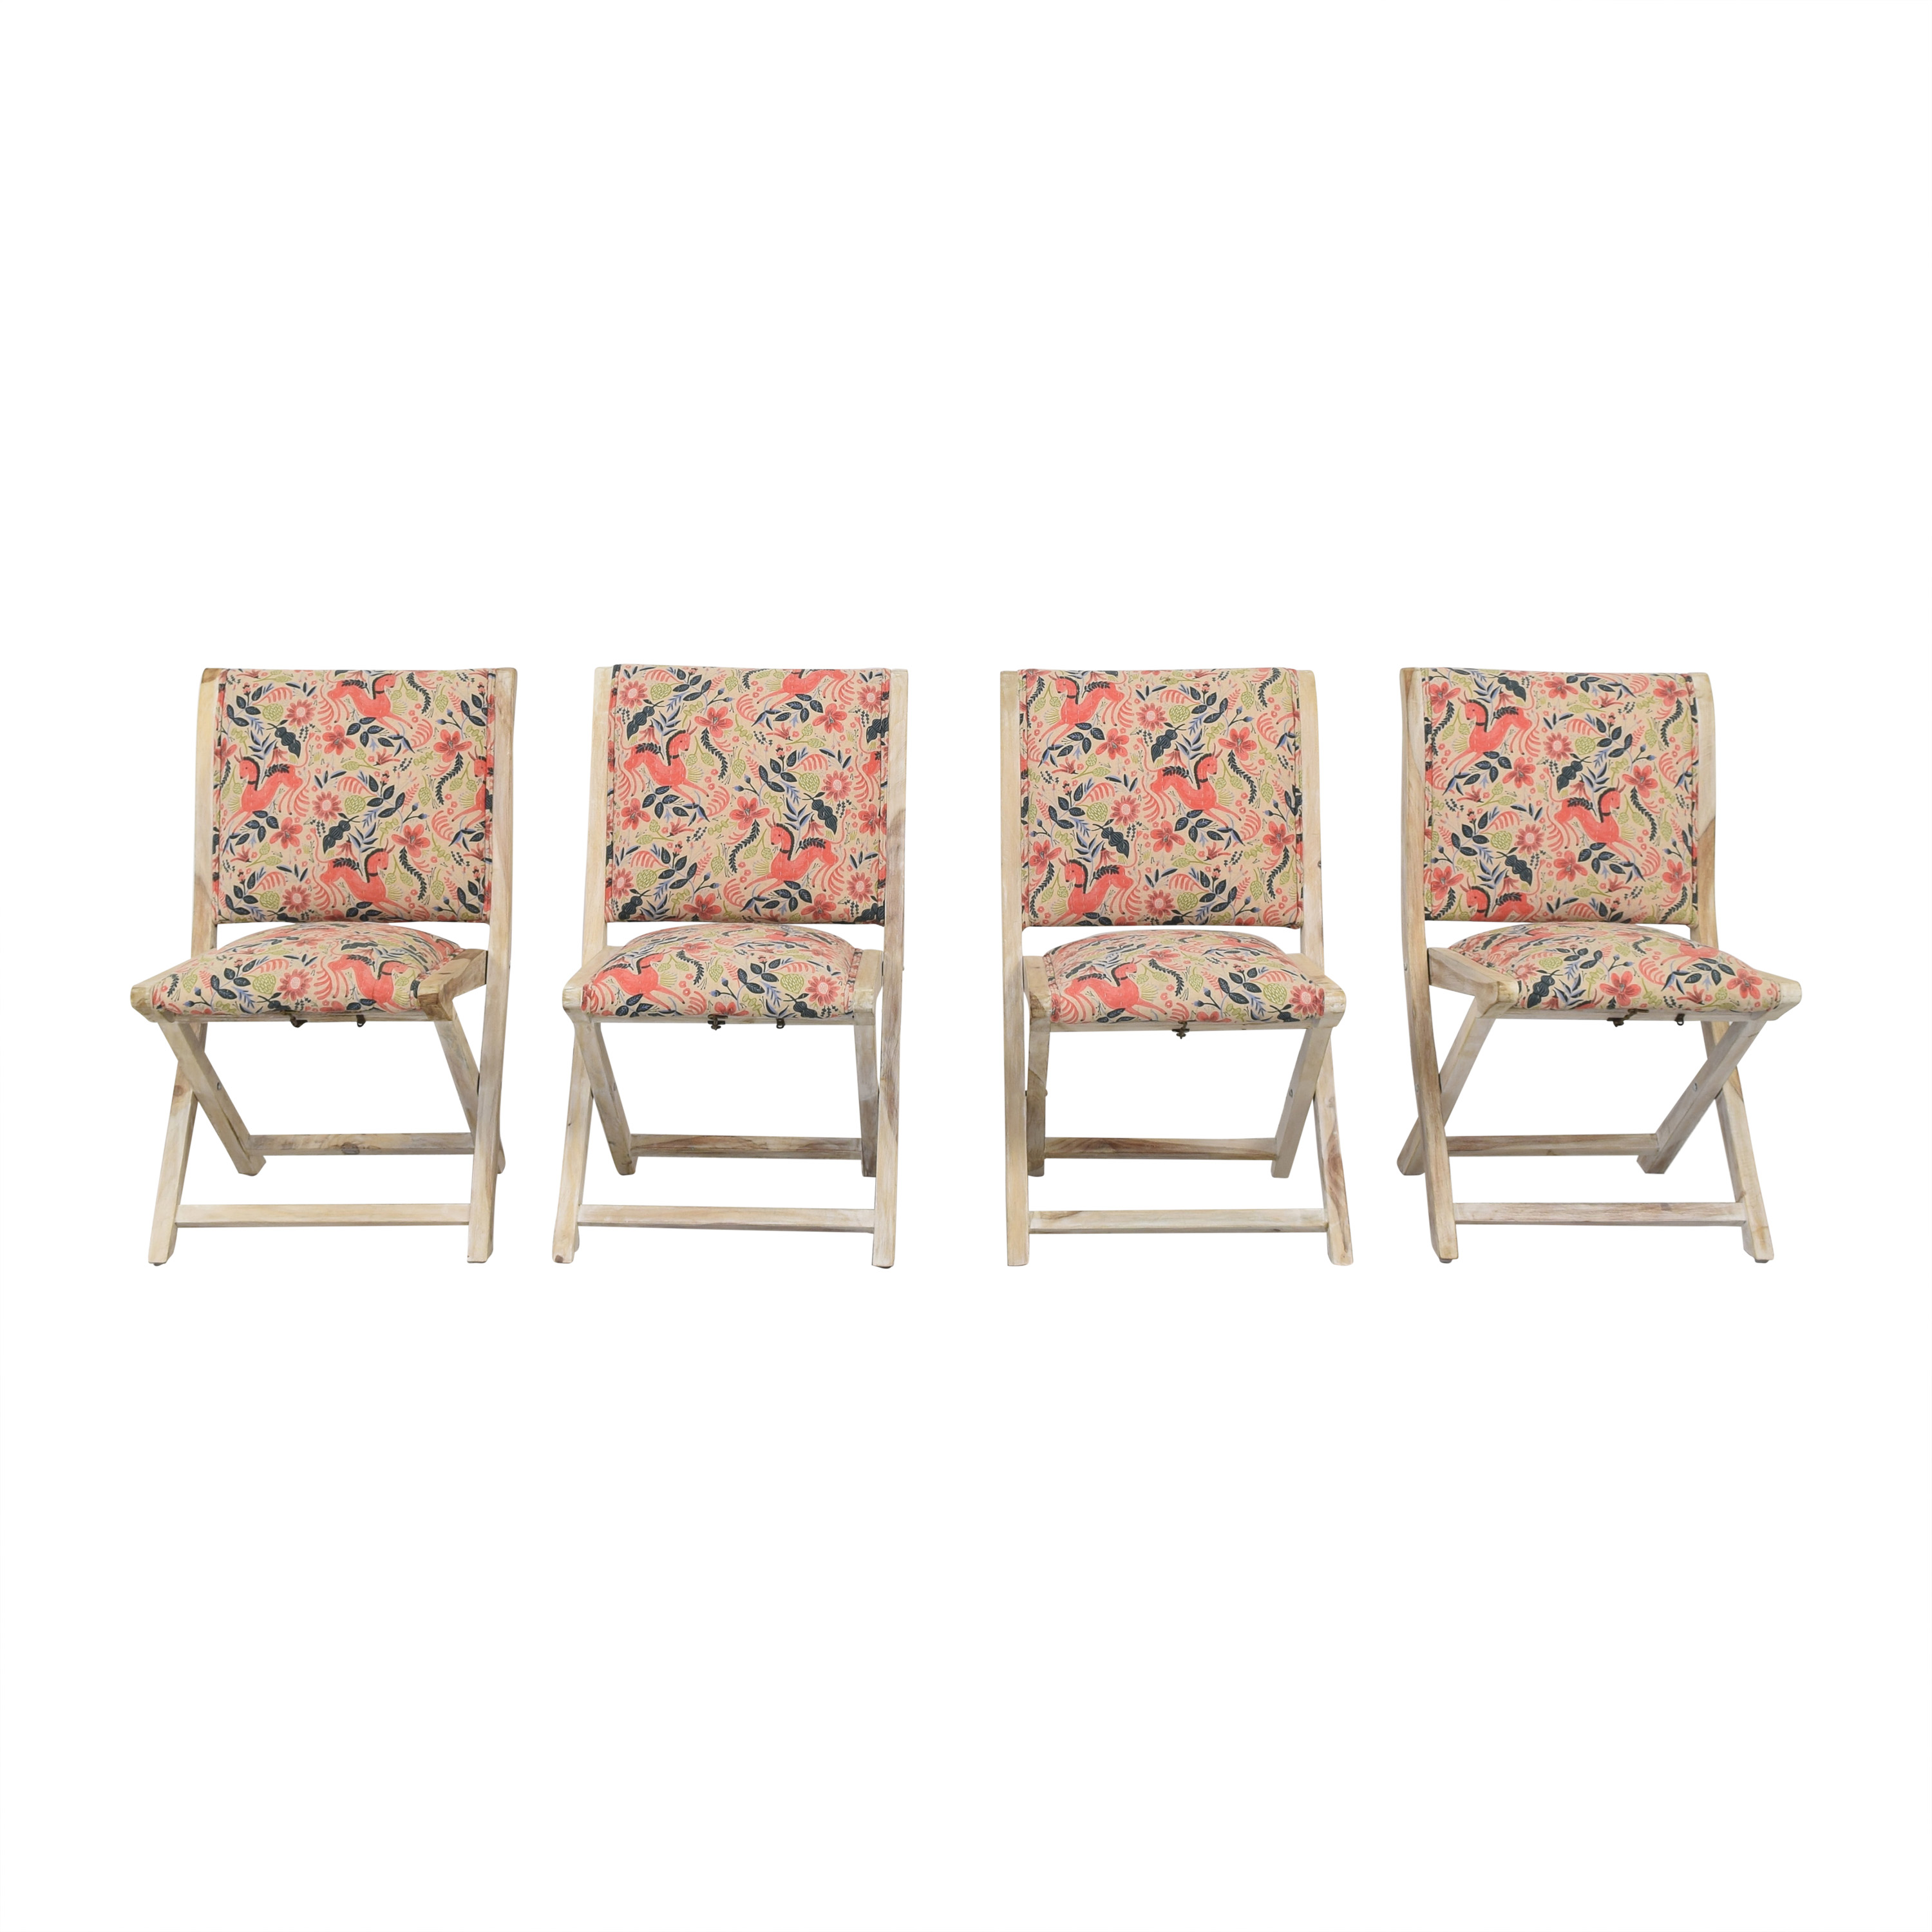 Anthropologie Rifle Paper Company Terai Chairs multi